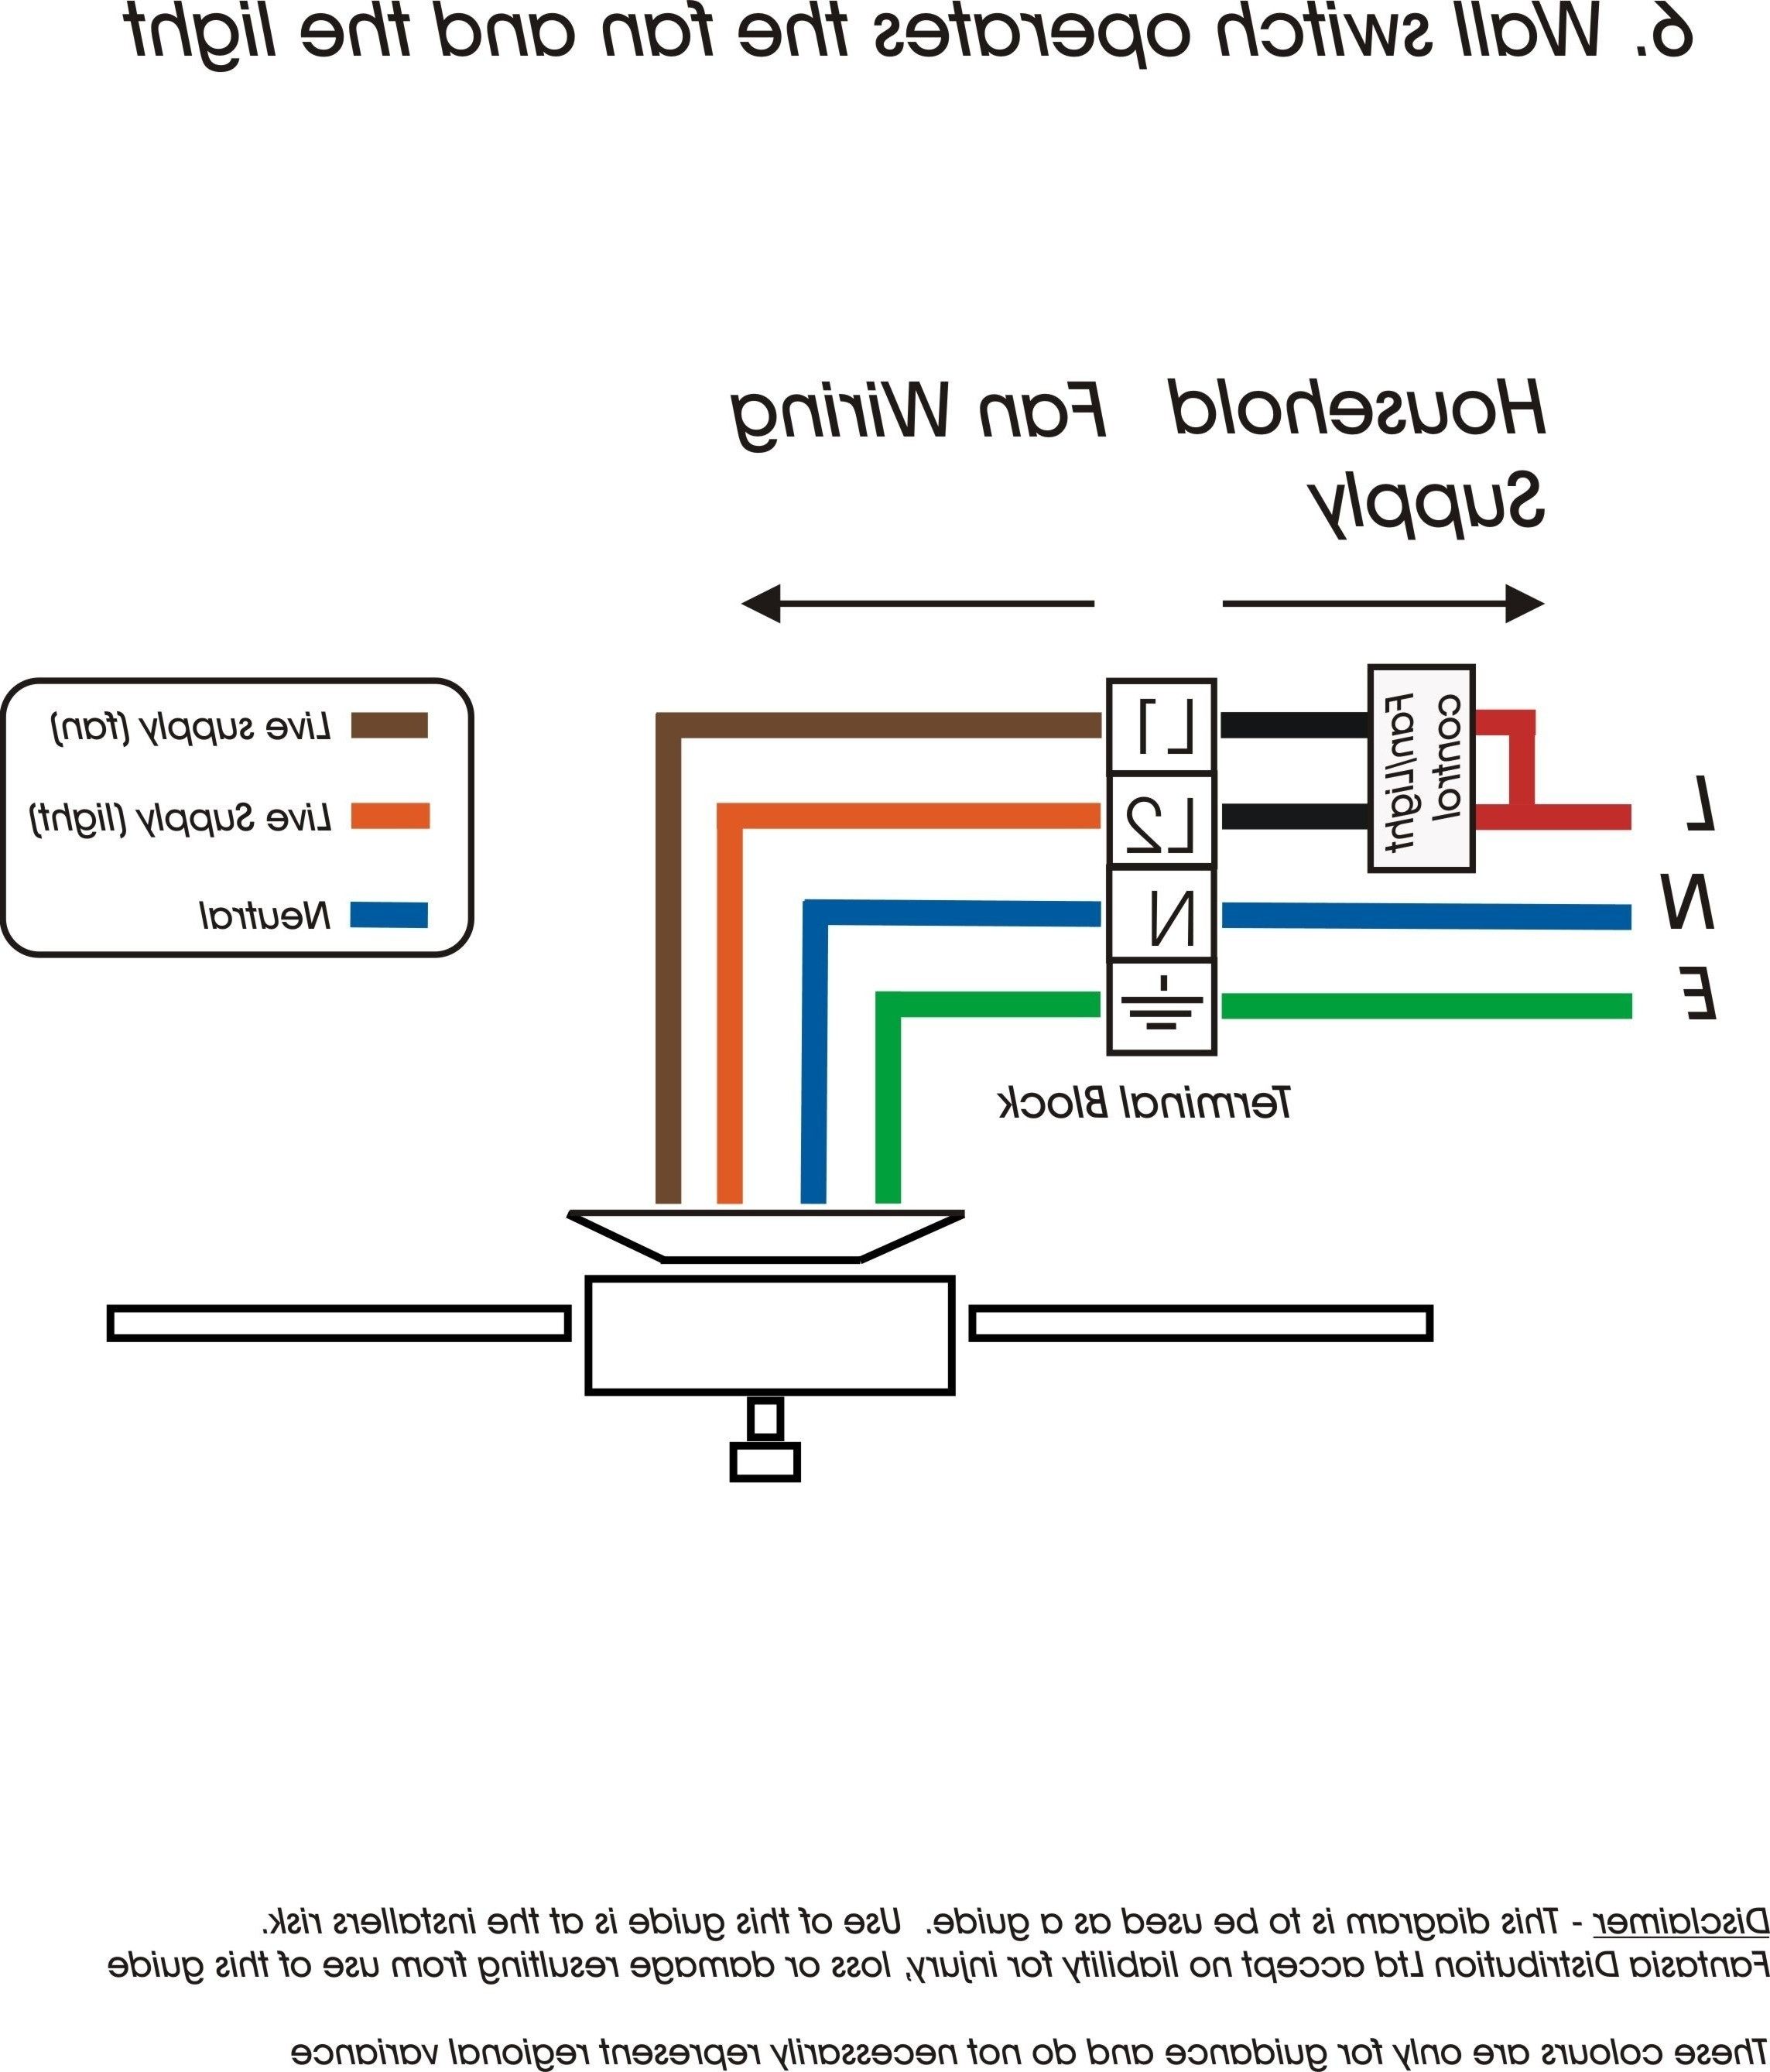 recessed lighting wiring diagram Collection Ripple Relay Wiring Diagram Refrence How To Wire Recessed Lighting DOWNLOAD Wiring Diagram